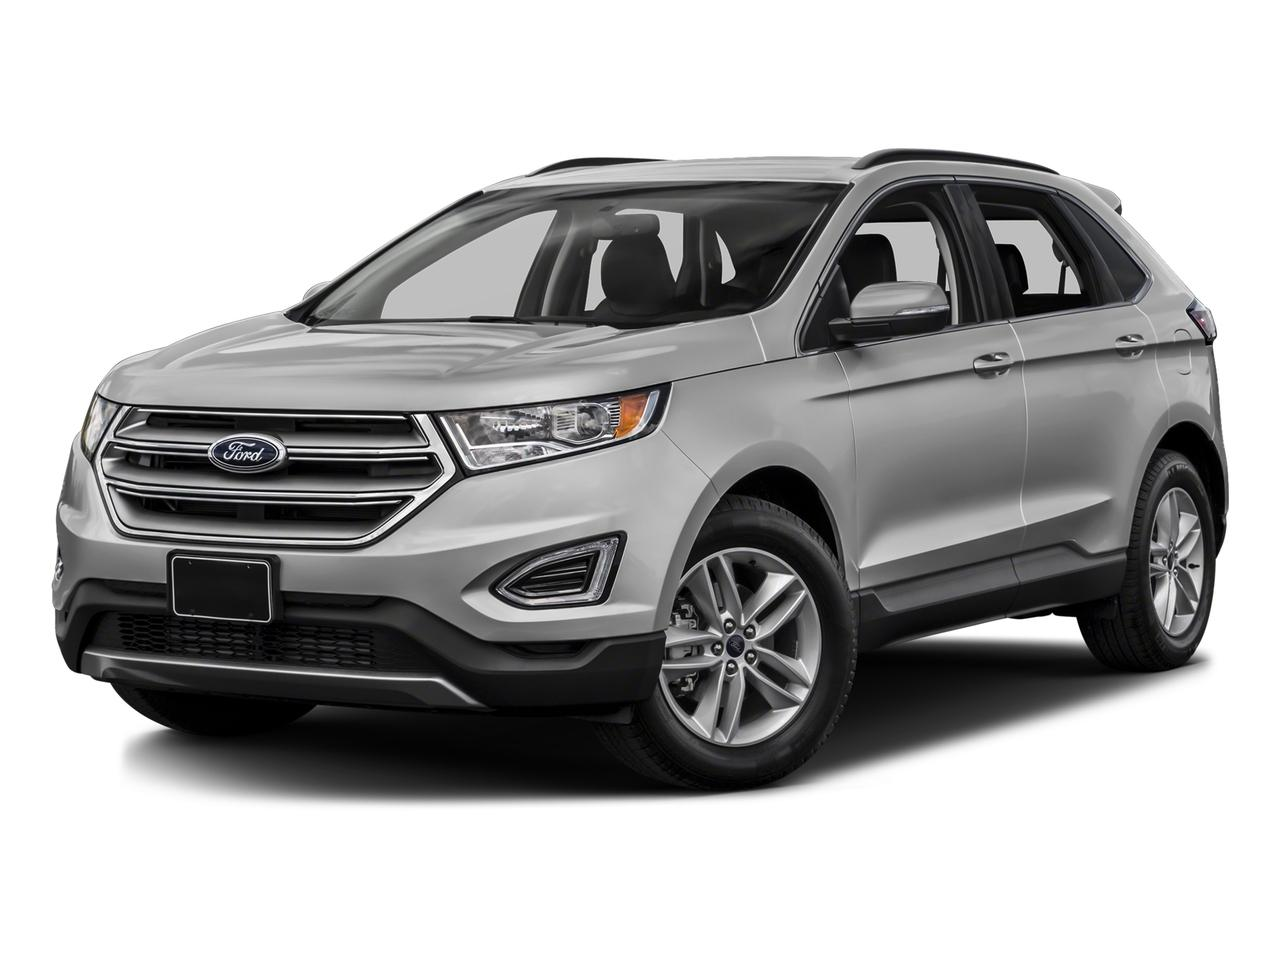 2017 Ford Edge Vehicle Photo in Rockville, MD 20852